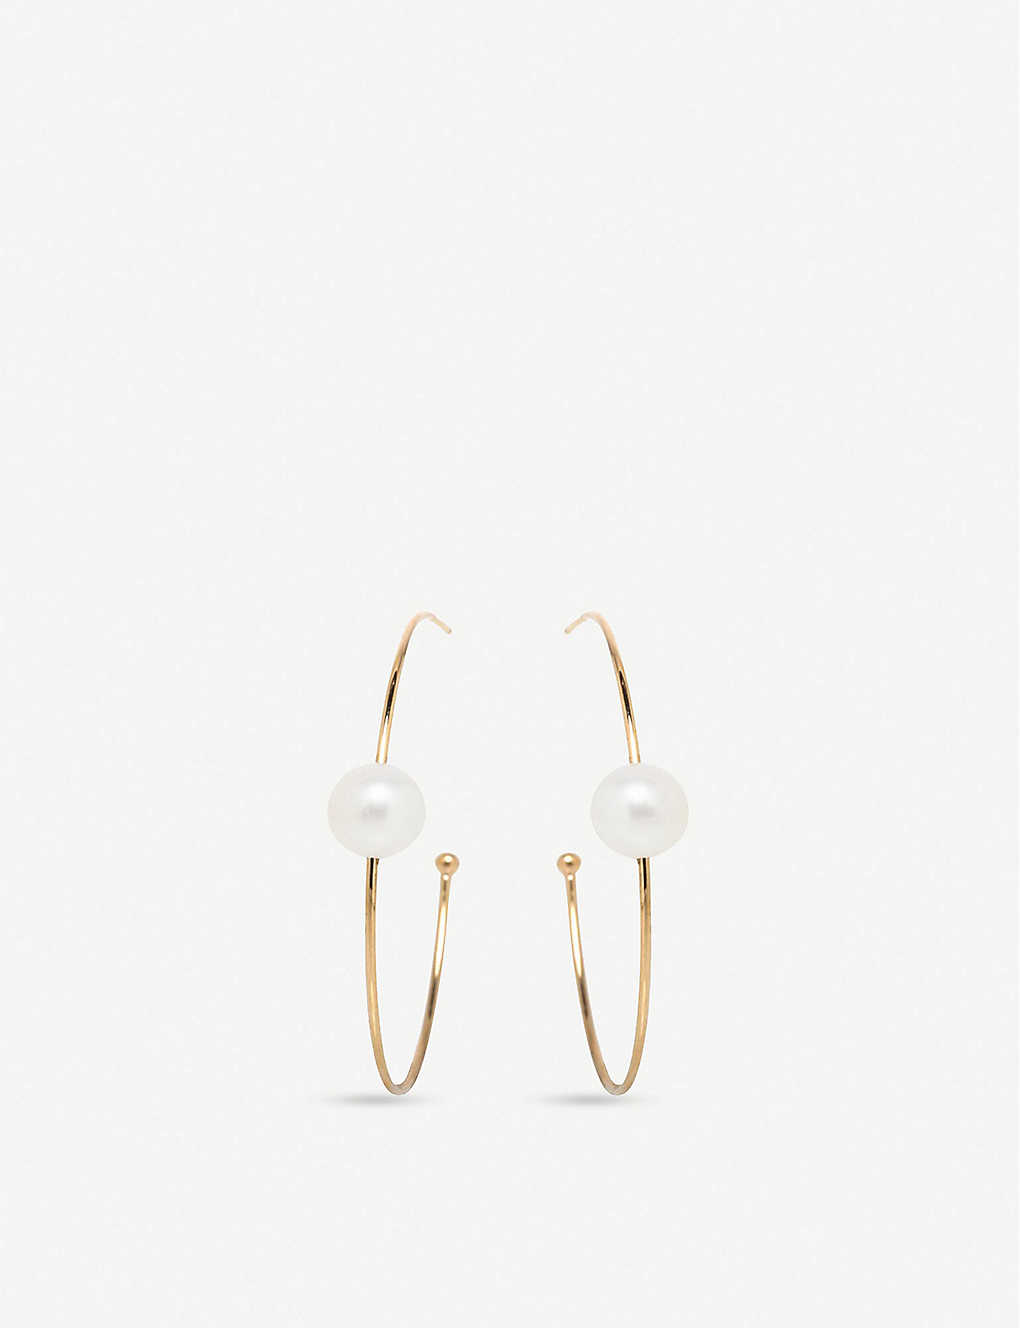 THE ALKEMISTRY: Zoë Chicco 14ct yellow-gold and pearl hoop earrings